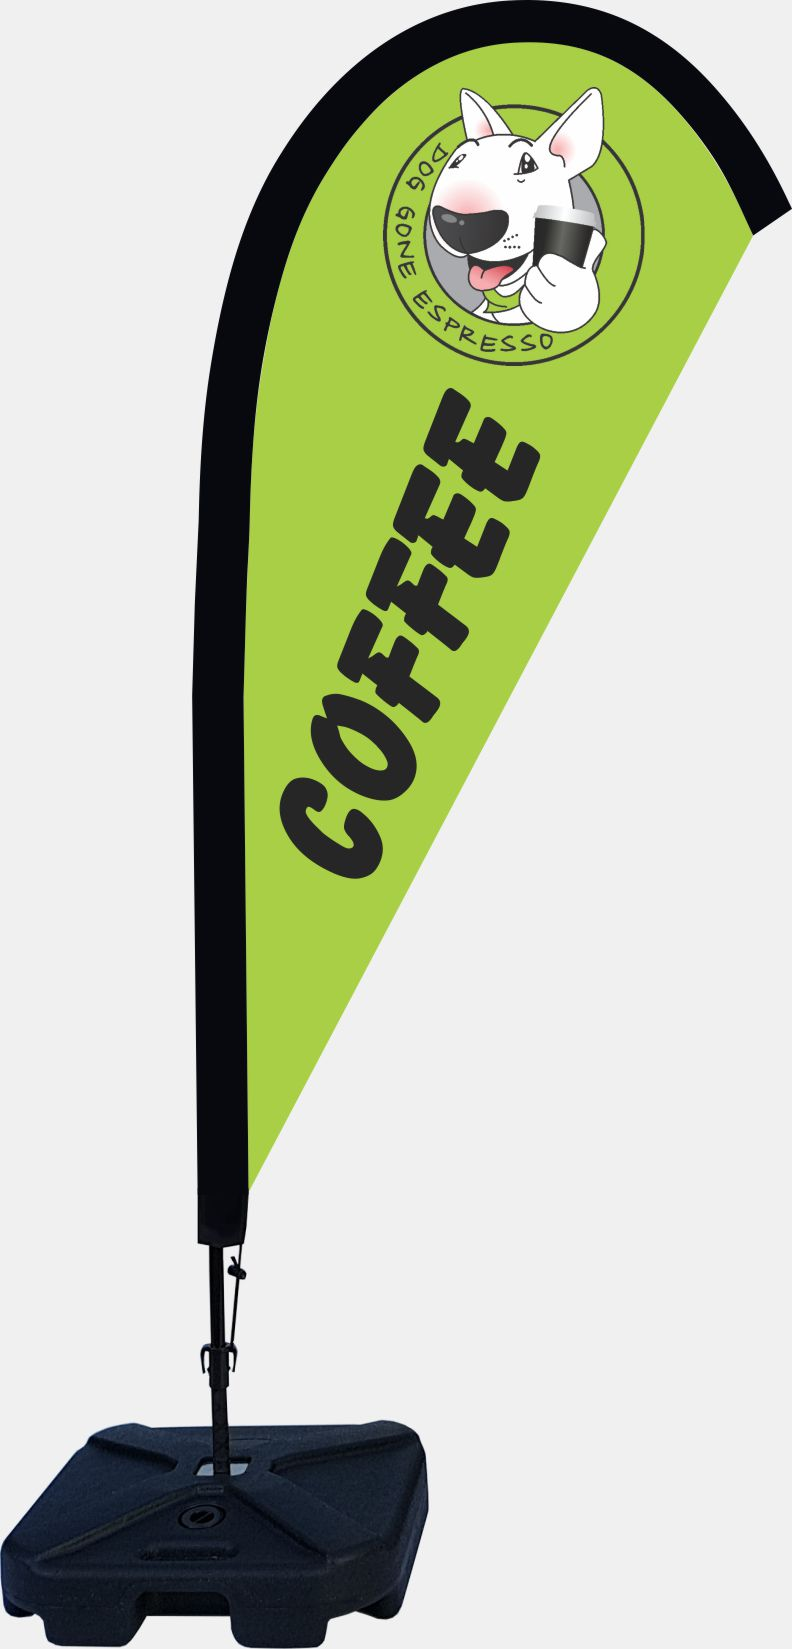 an example of small teardrop banners melbourne for cafes and coffee flags in Melbourne Australia